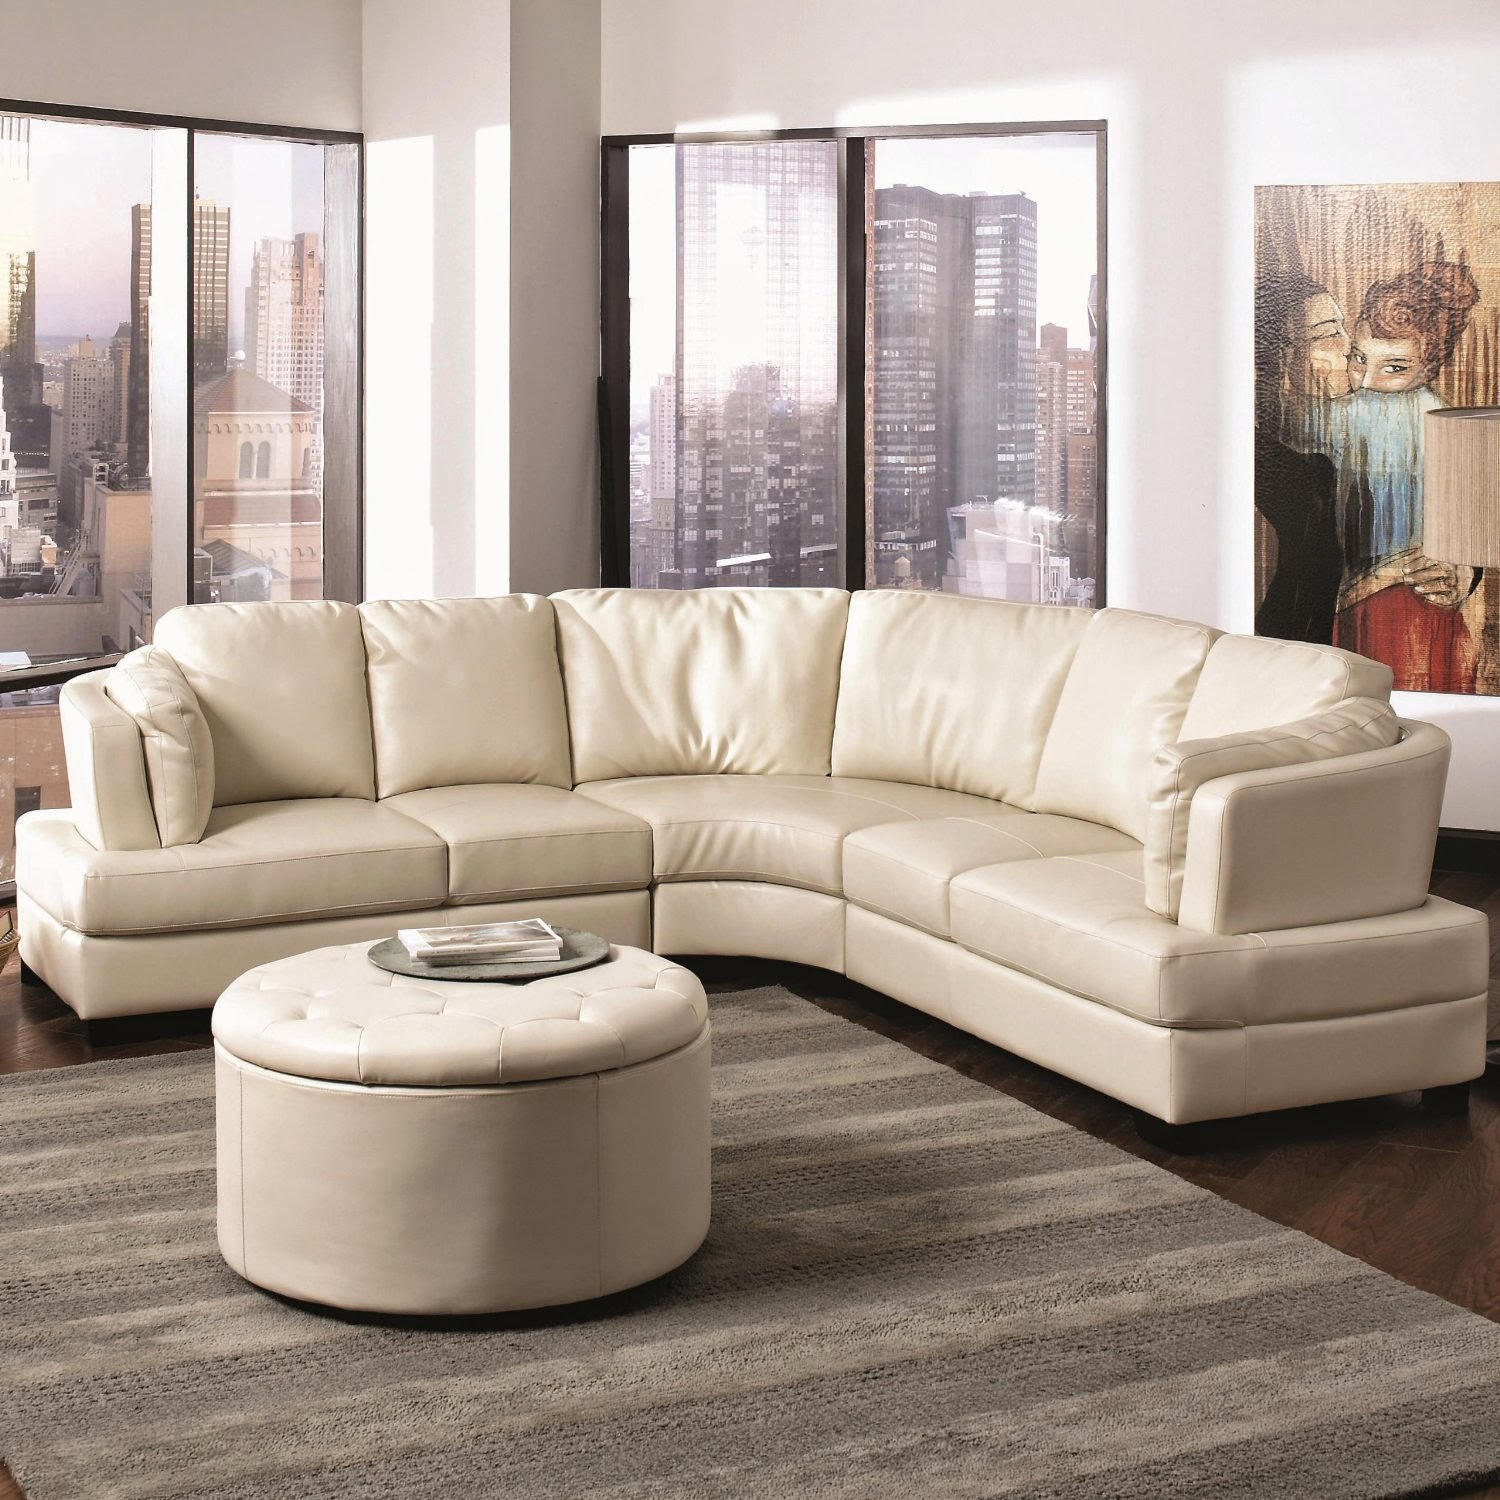 Round Sofa Home & Interior Design